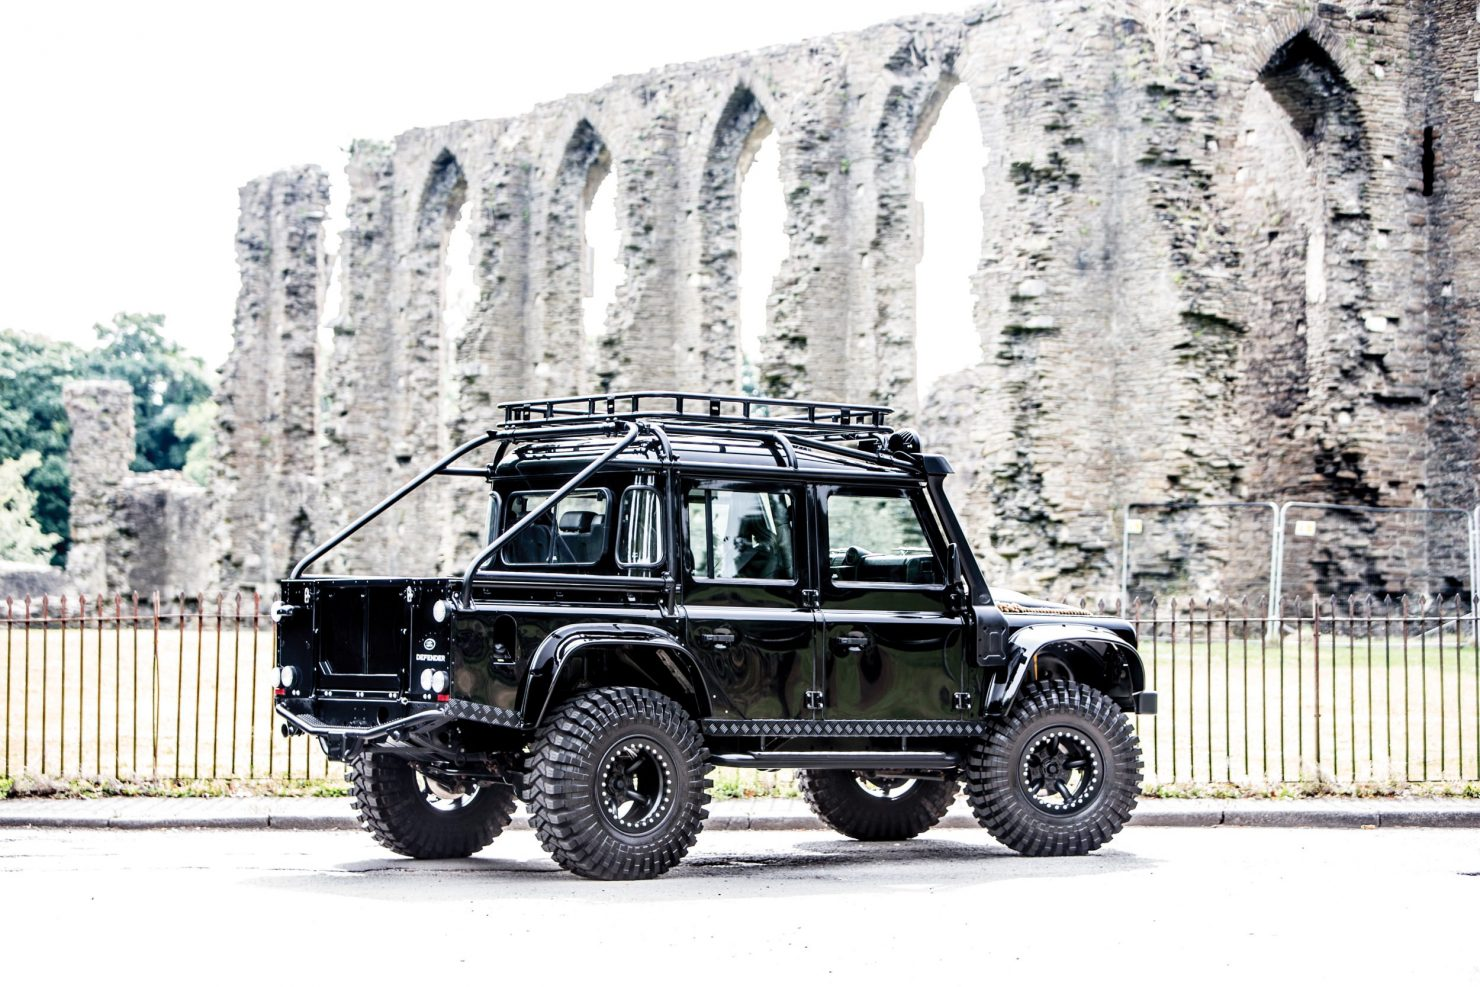 james bond spectre land rover defender svx 2 1480x987 - Ex-James Bond Spectre - Land Rover Defender SVX